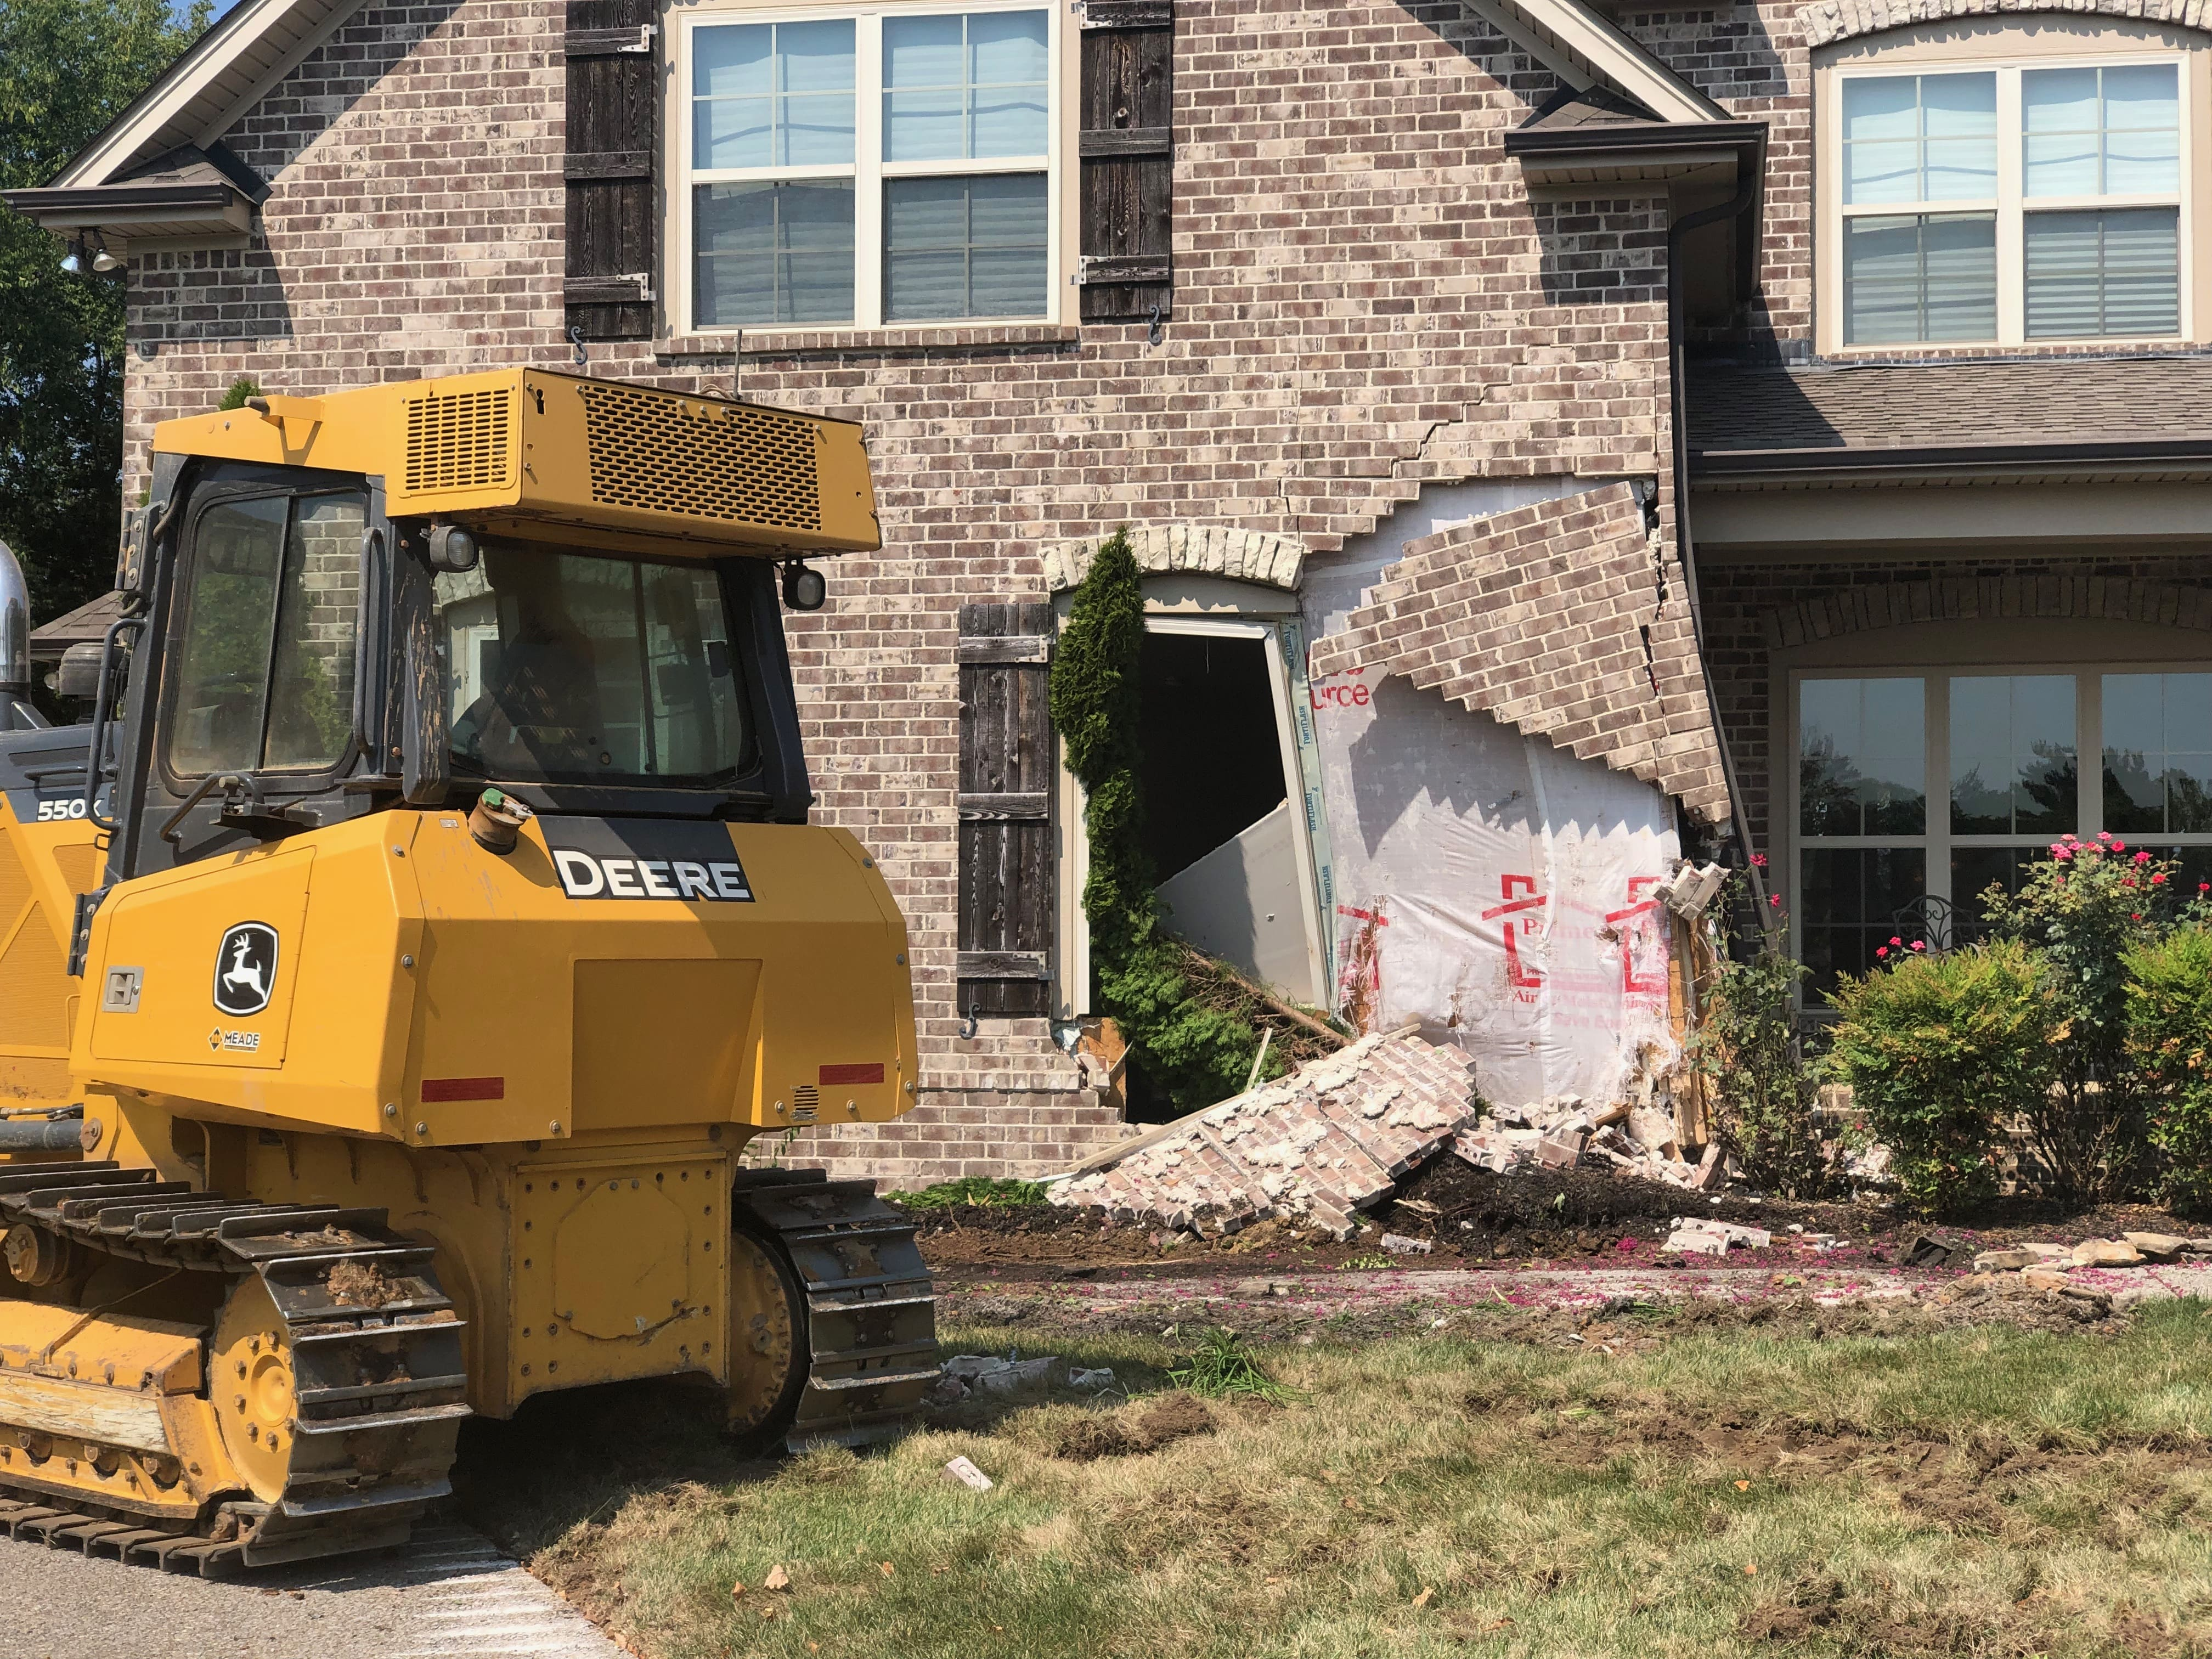 Rogue construction worker takes bulldozer to occupied Spring Hill home